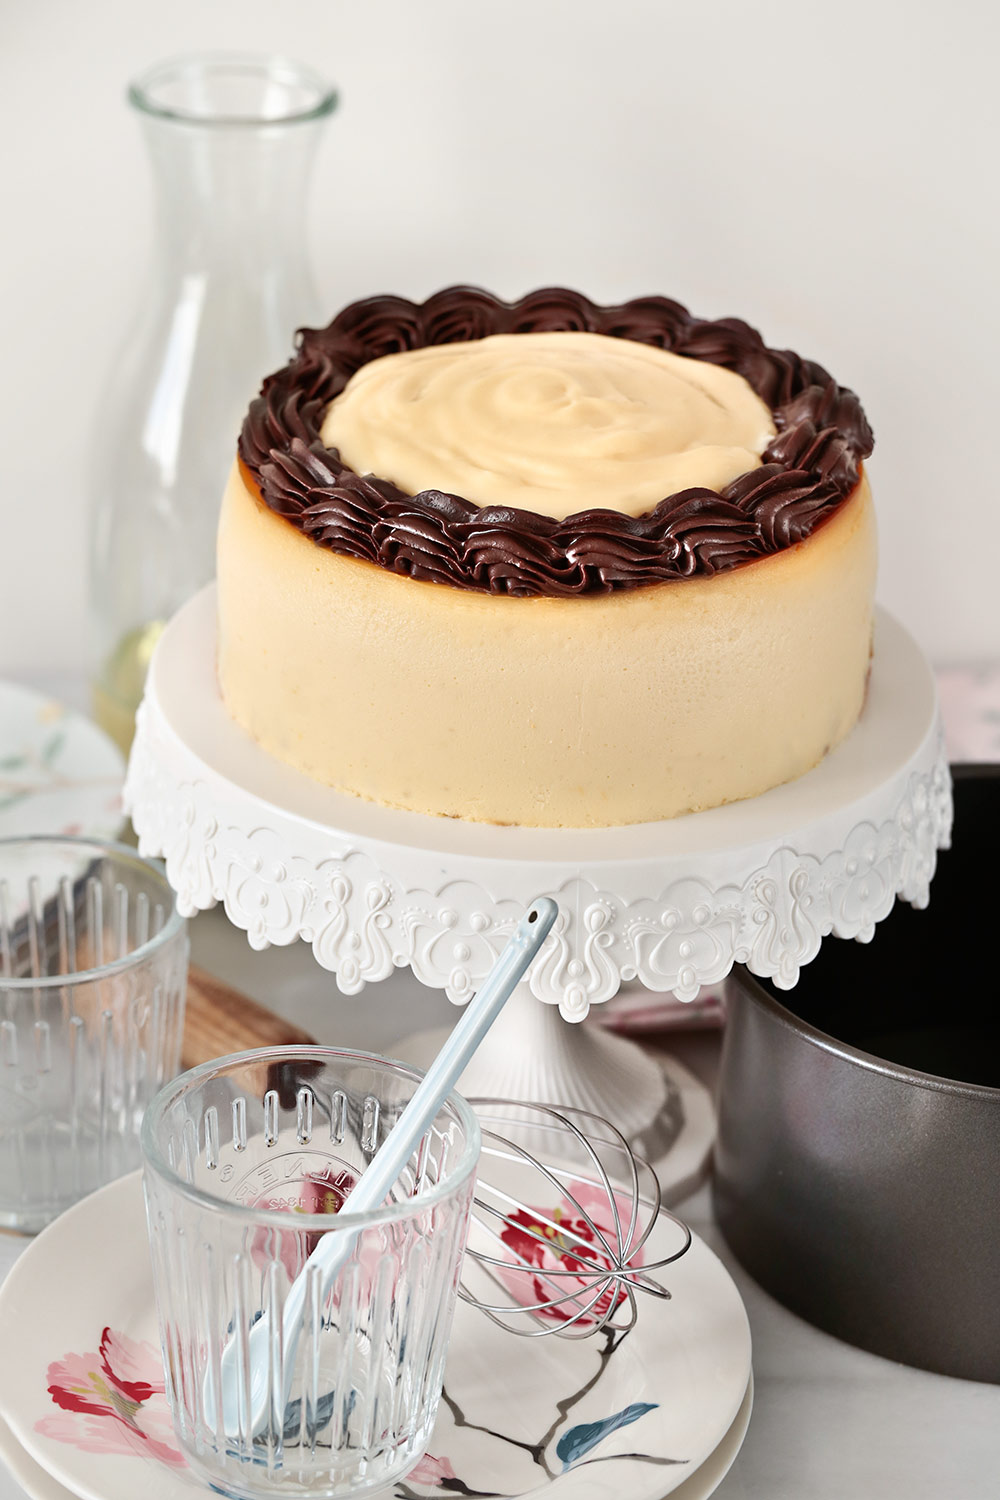 Cheesecake Boston cream pie